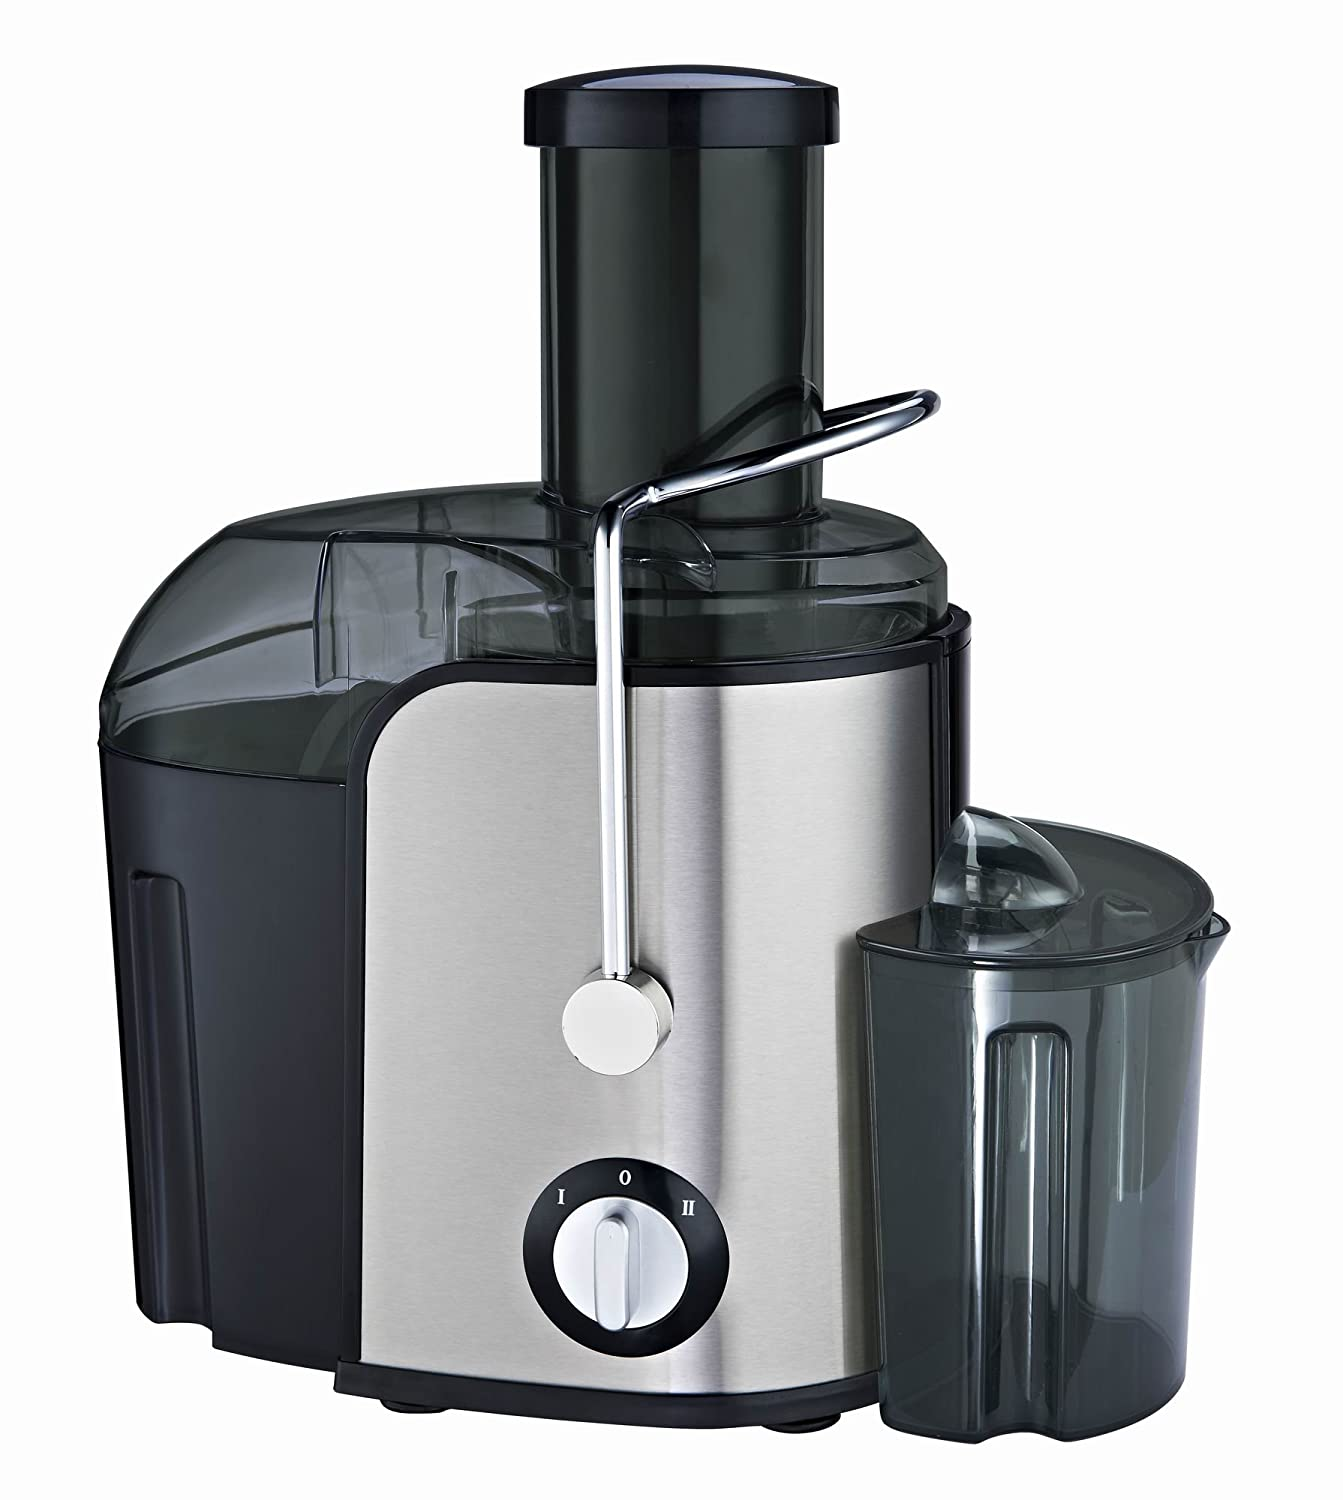 Primada Slow Juicer Review : Slow Juicer Harga. Homemade Juice Easily. Slow Juicer Silver Hwsbe18 W Drum Set. Picture Of ...